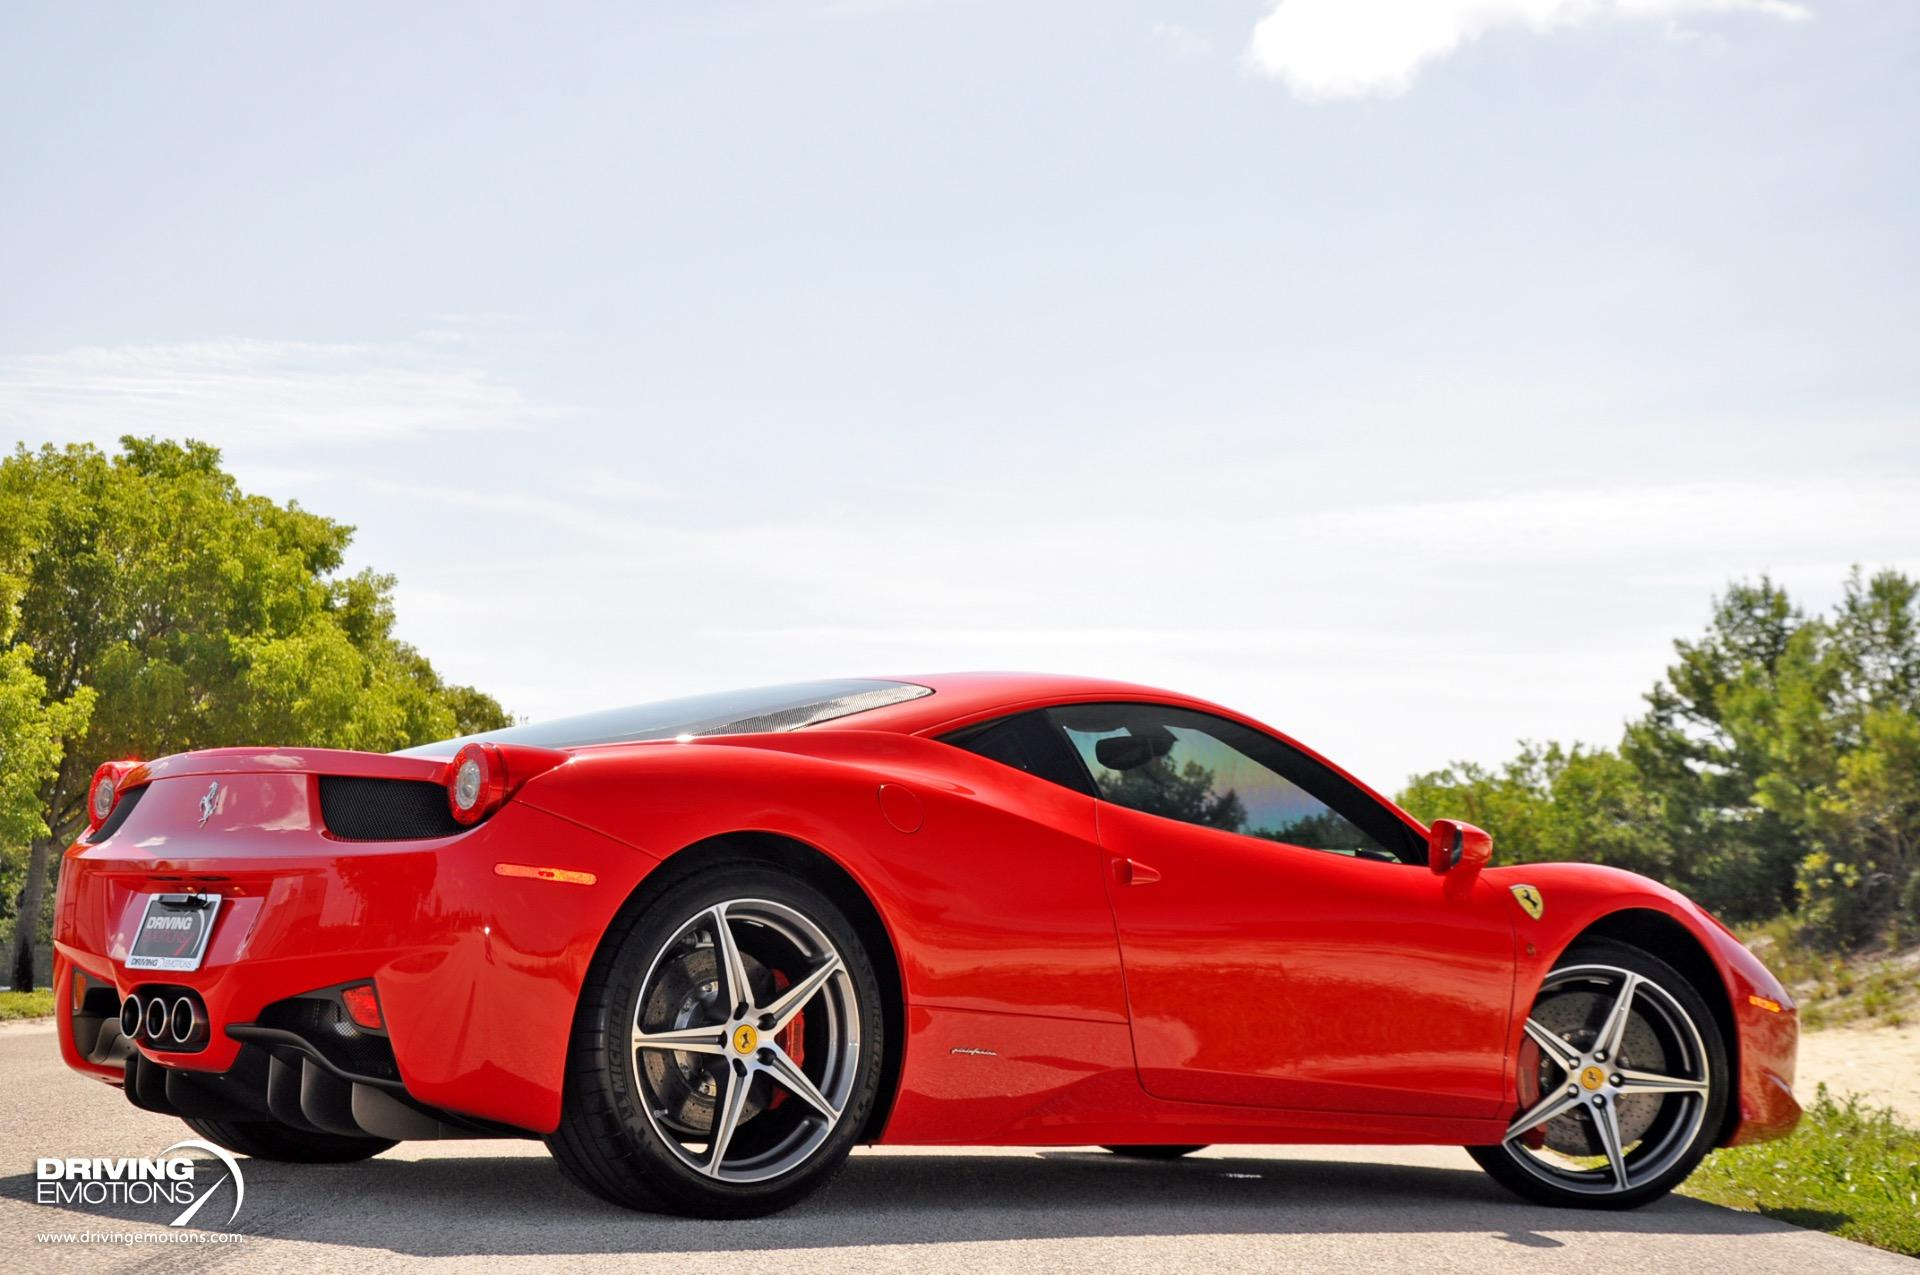 Used Cars For Sale In Charlotte Under